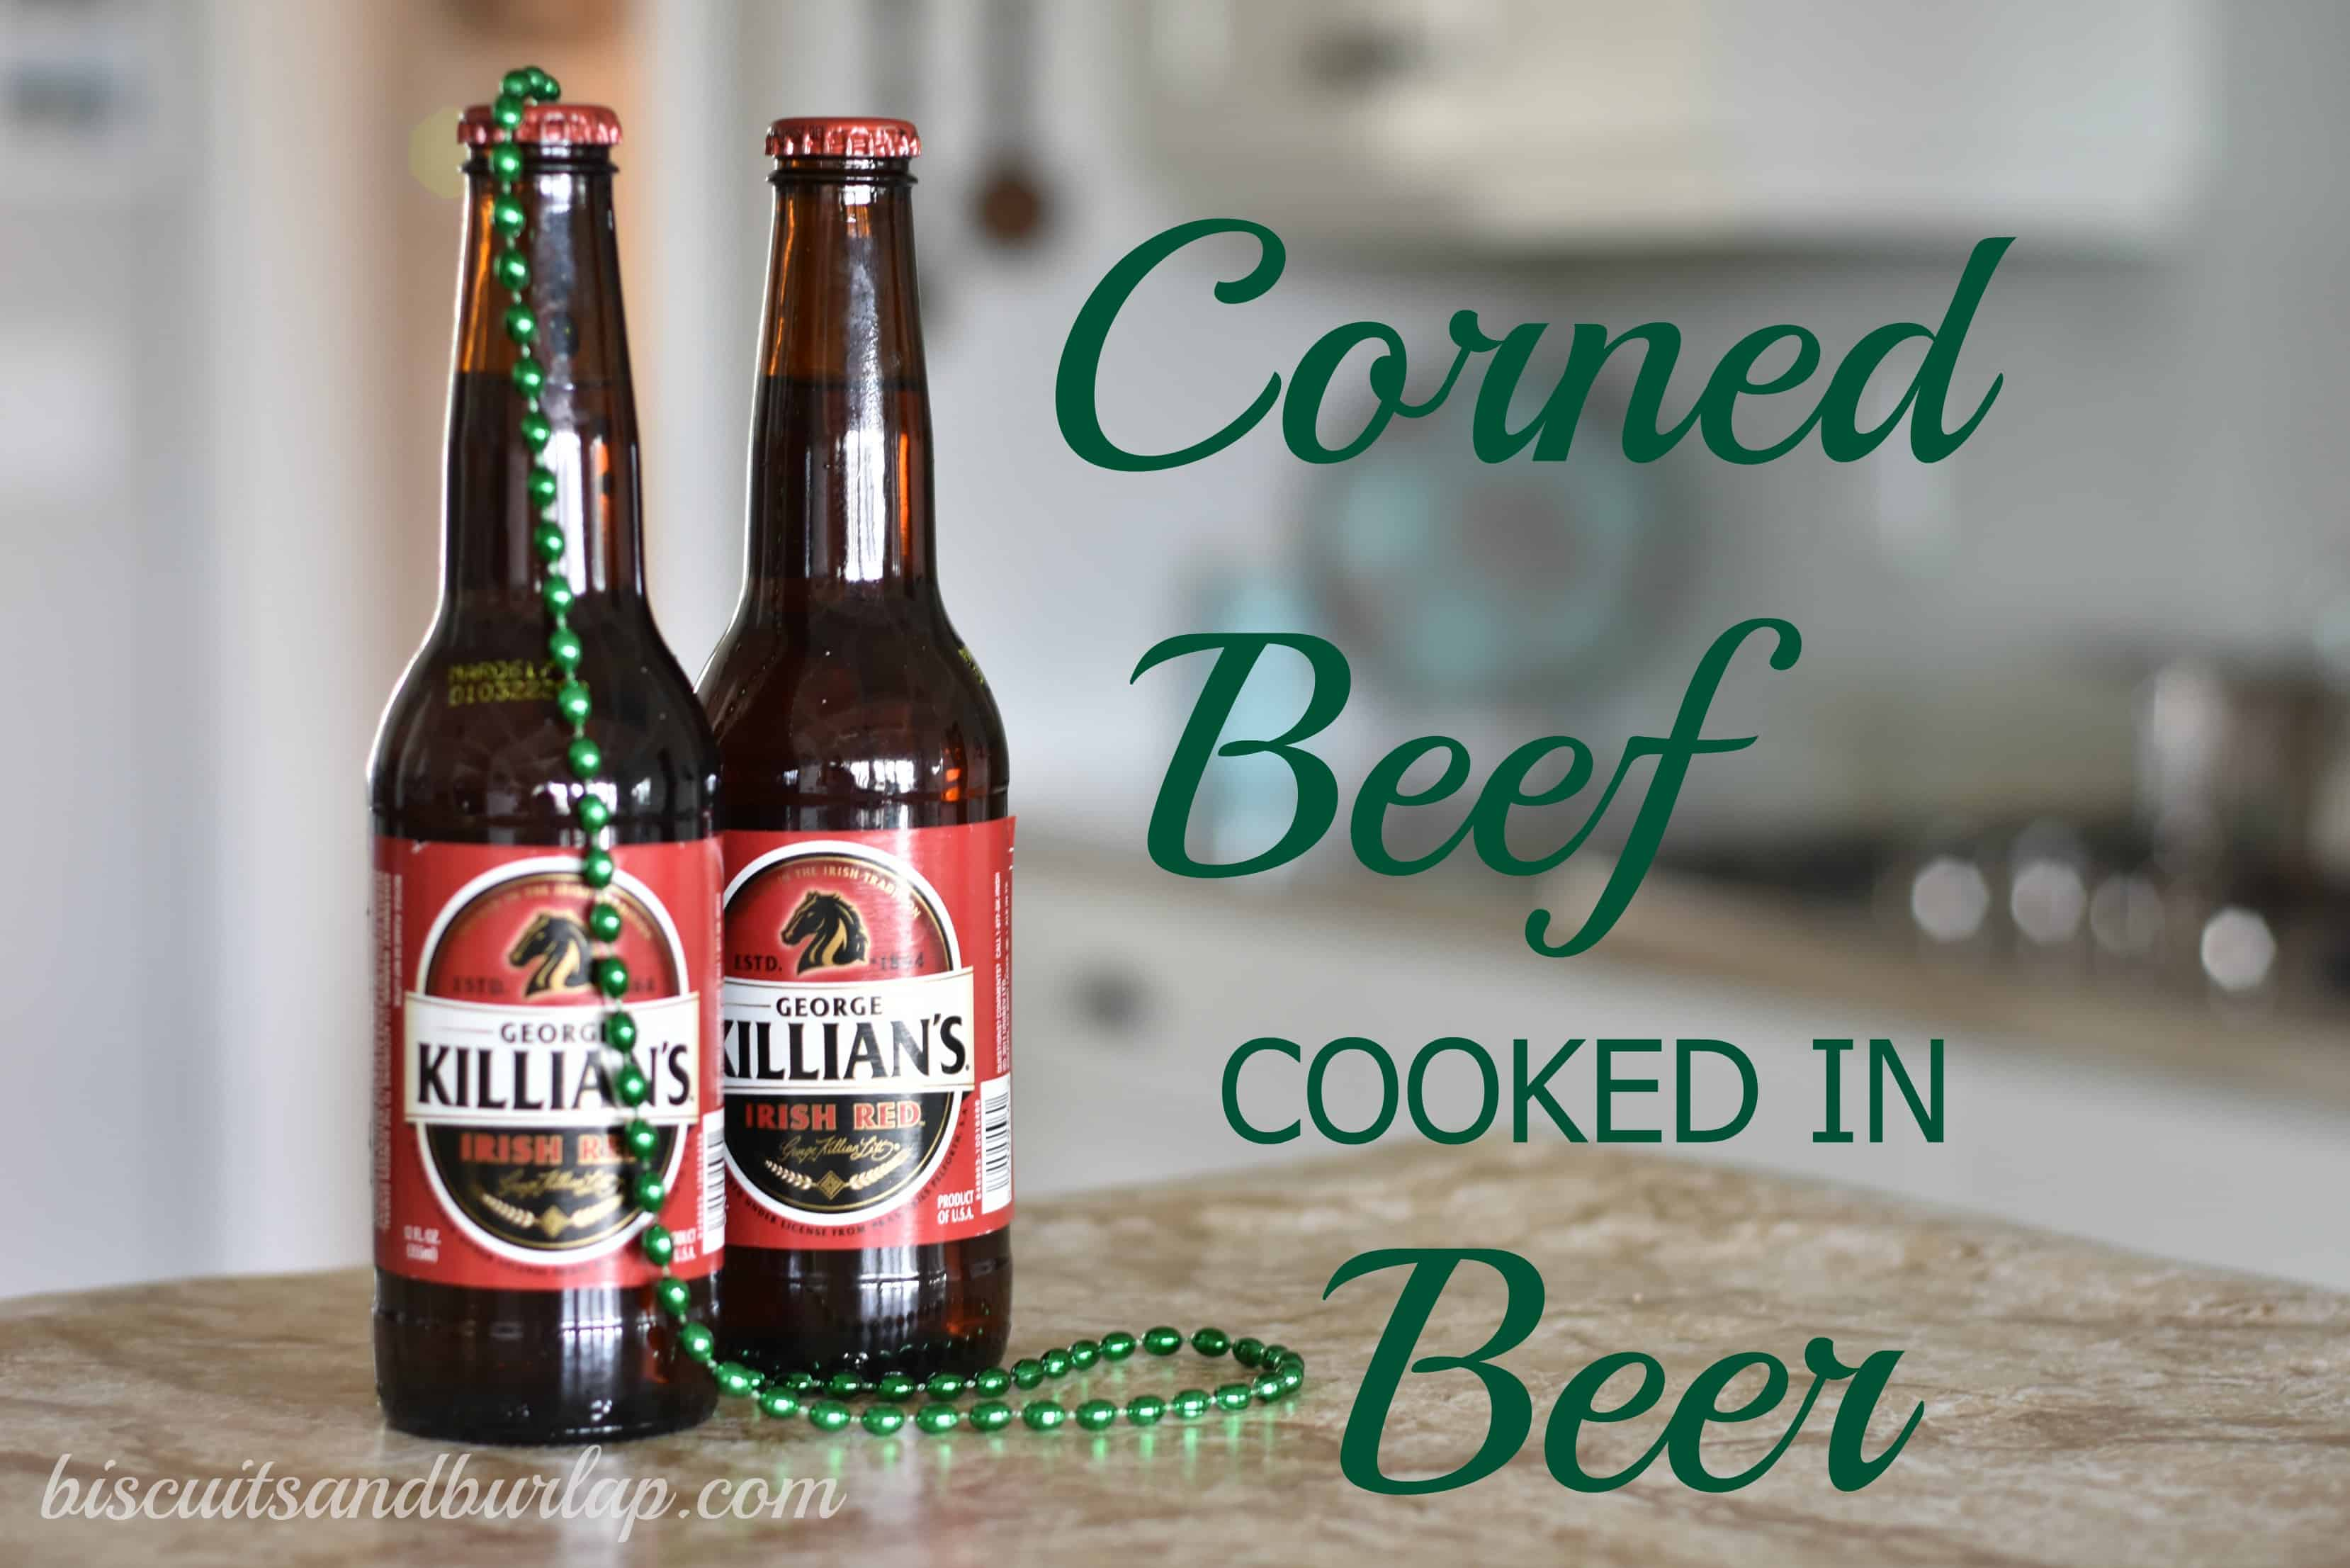 Corned Beef Cooked in Beer? You Bet!